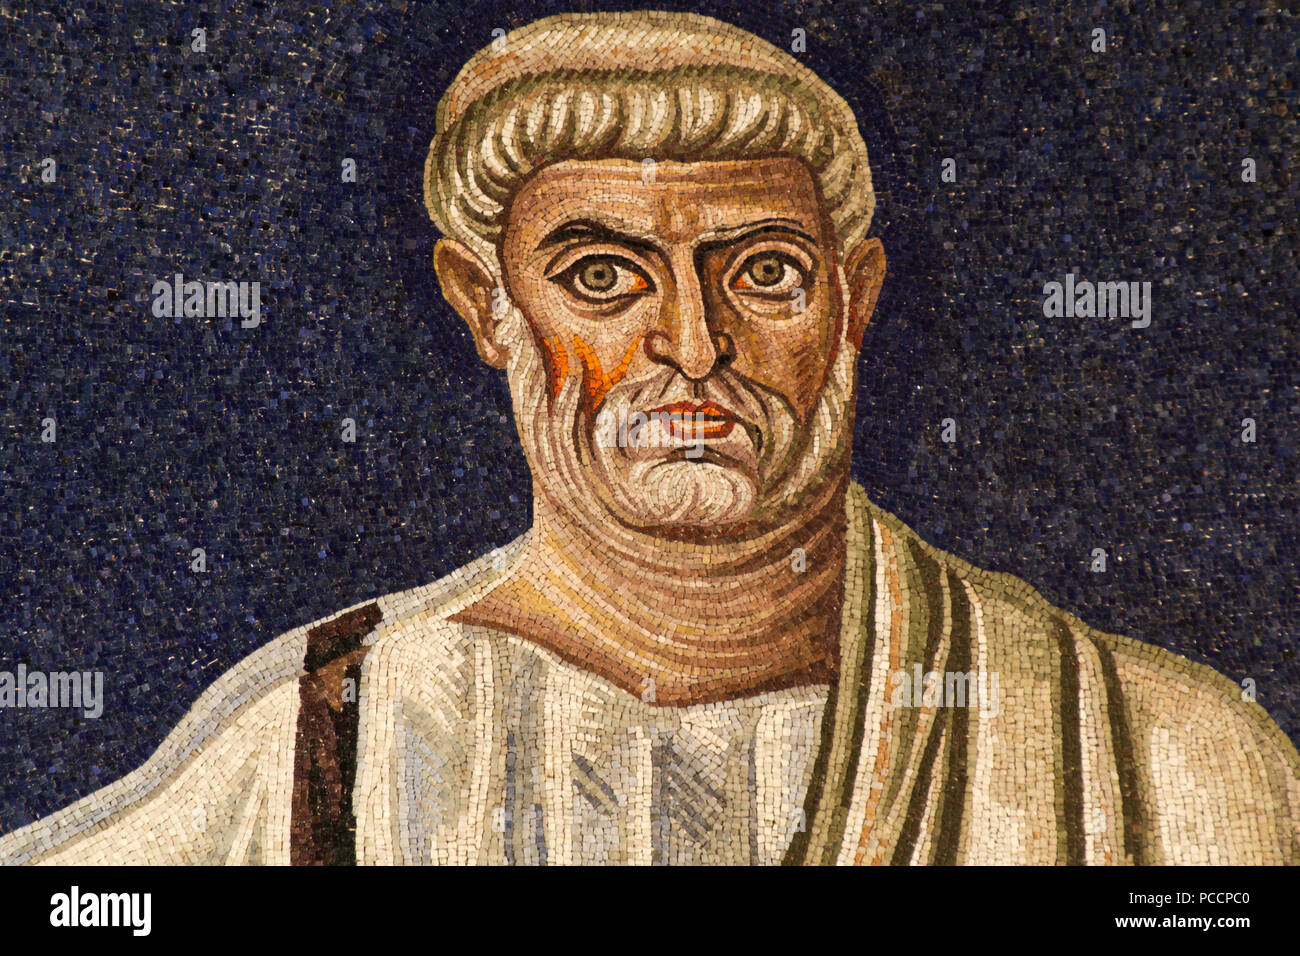 Saint Peter - Detail of the 6th century apse mosaic (530 AC) - Masterpiece of the early Christian Art - Basilica of Santi Cosma e Damiano - Rome Stock Photo